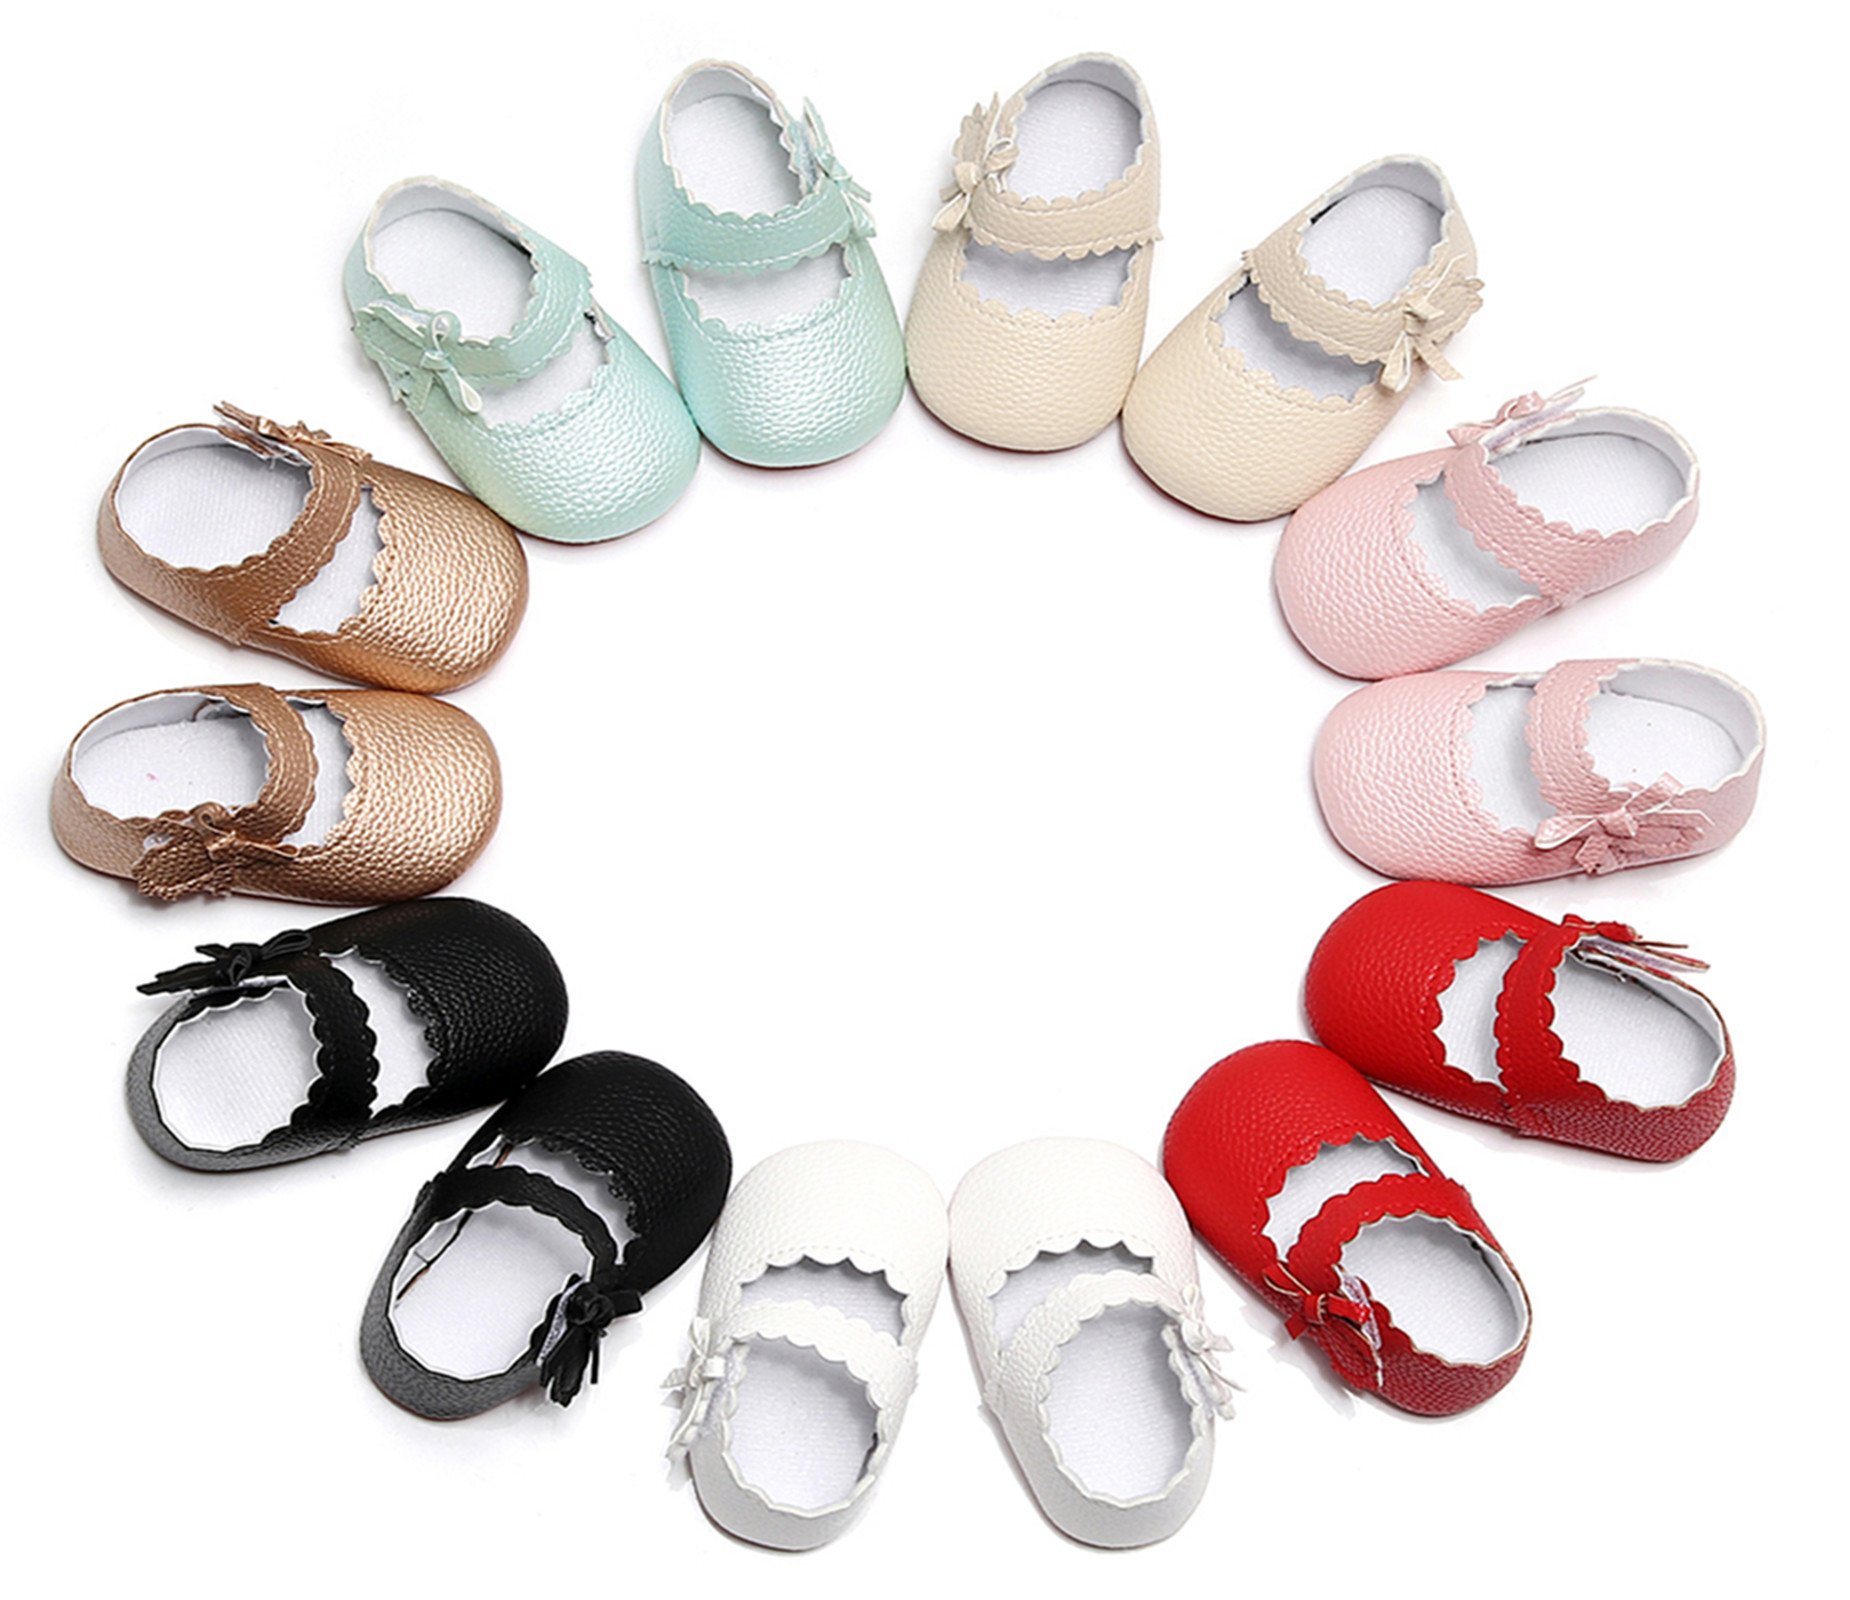 2018 New Arrival Handmade Baby Moccasins Cute Infant Toddler Girls Princess Shoes First Walkers